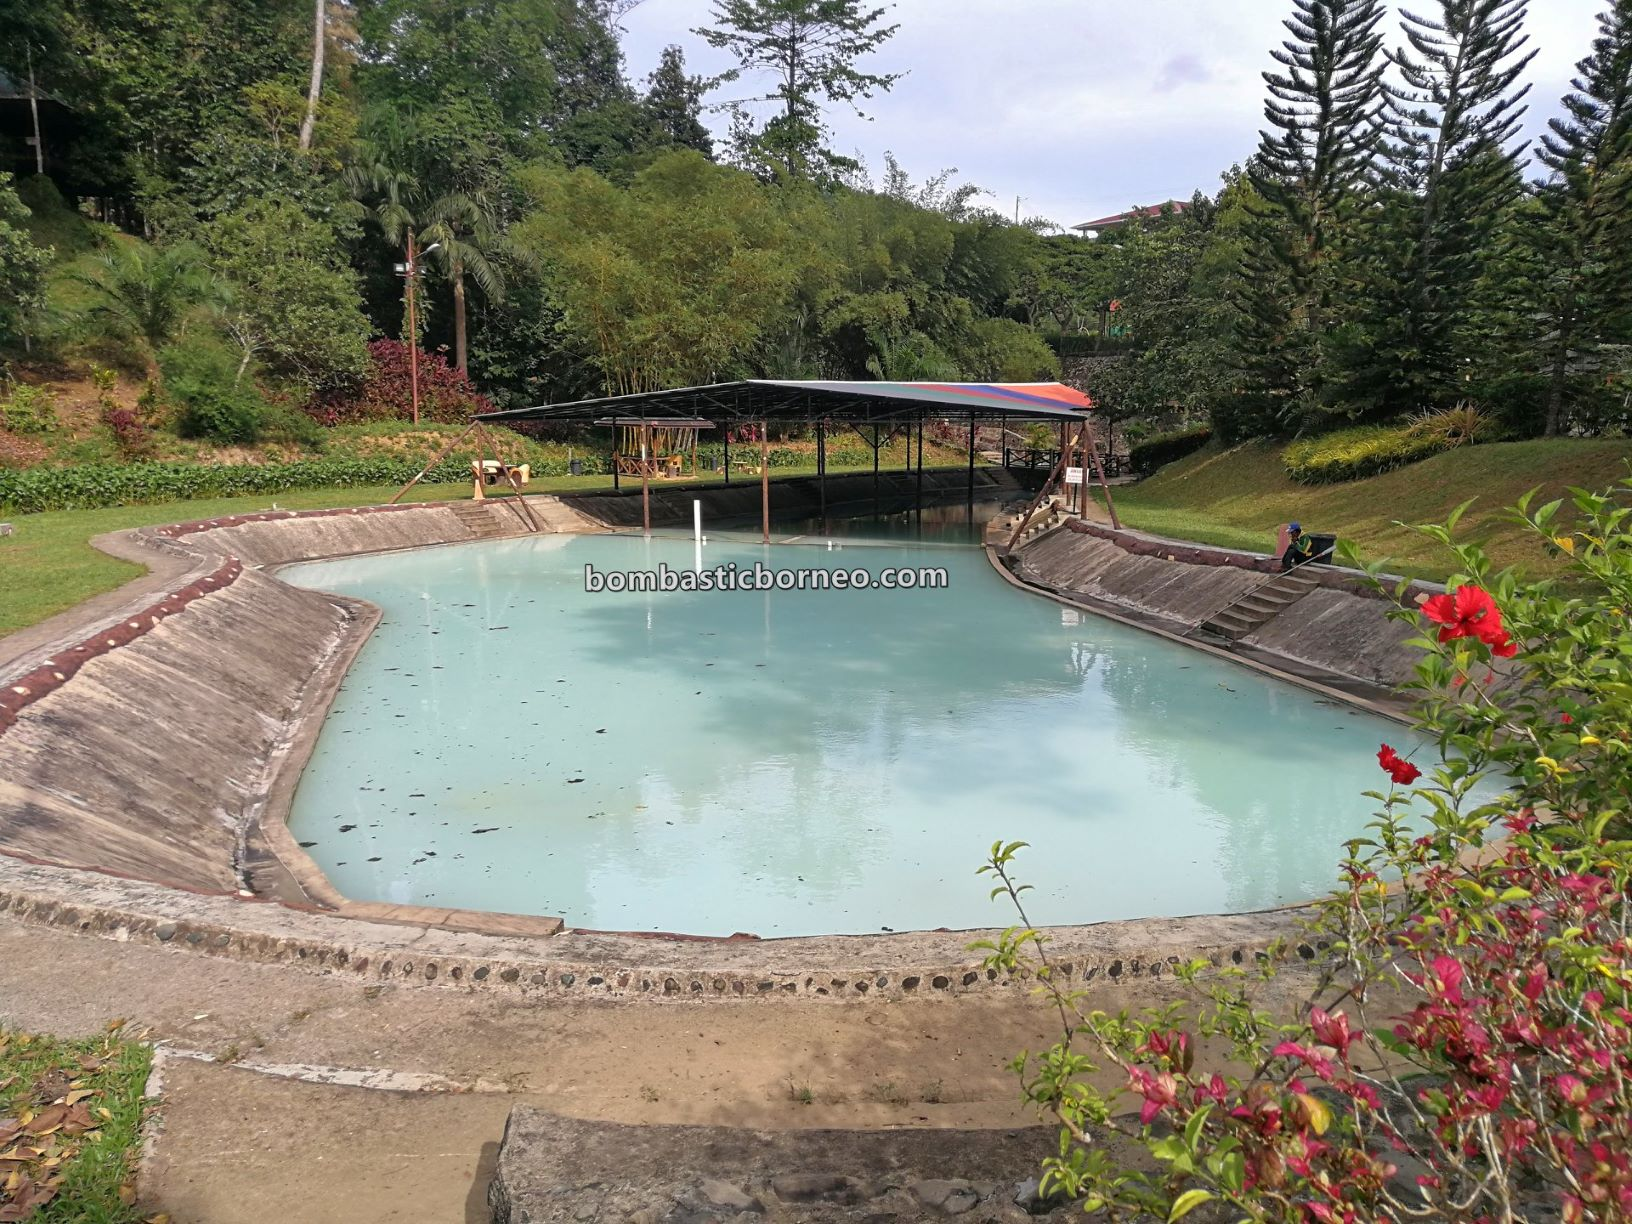 Sankina Hotspring Park, outdoor, recreational, water park, destination, family vacation, holiday, Malaysia, Tourism, tourist attraction, Travel guide, Borneo, 婆罗洲游沙巴, 善勤温泉乐园, 斗湖温泉旅游景点